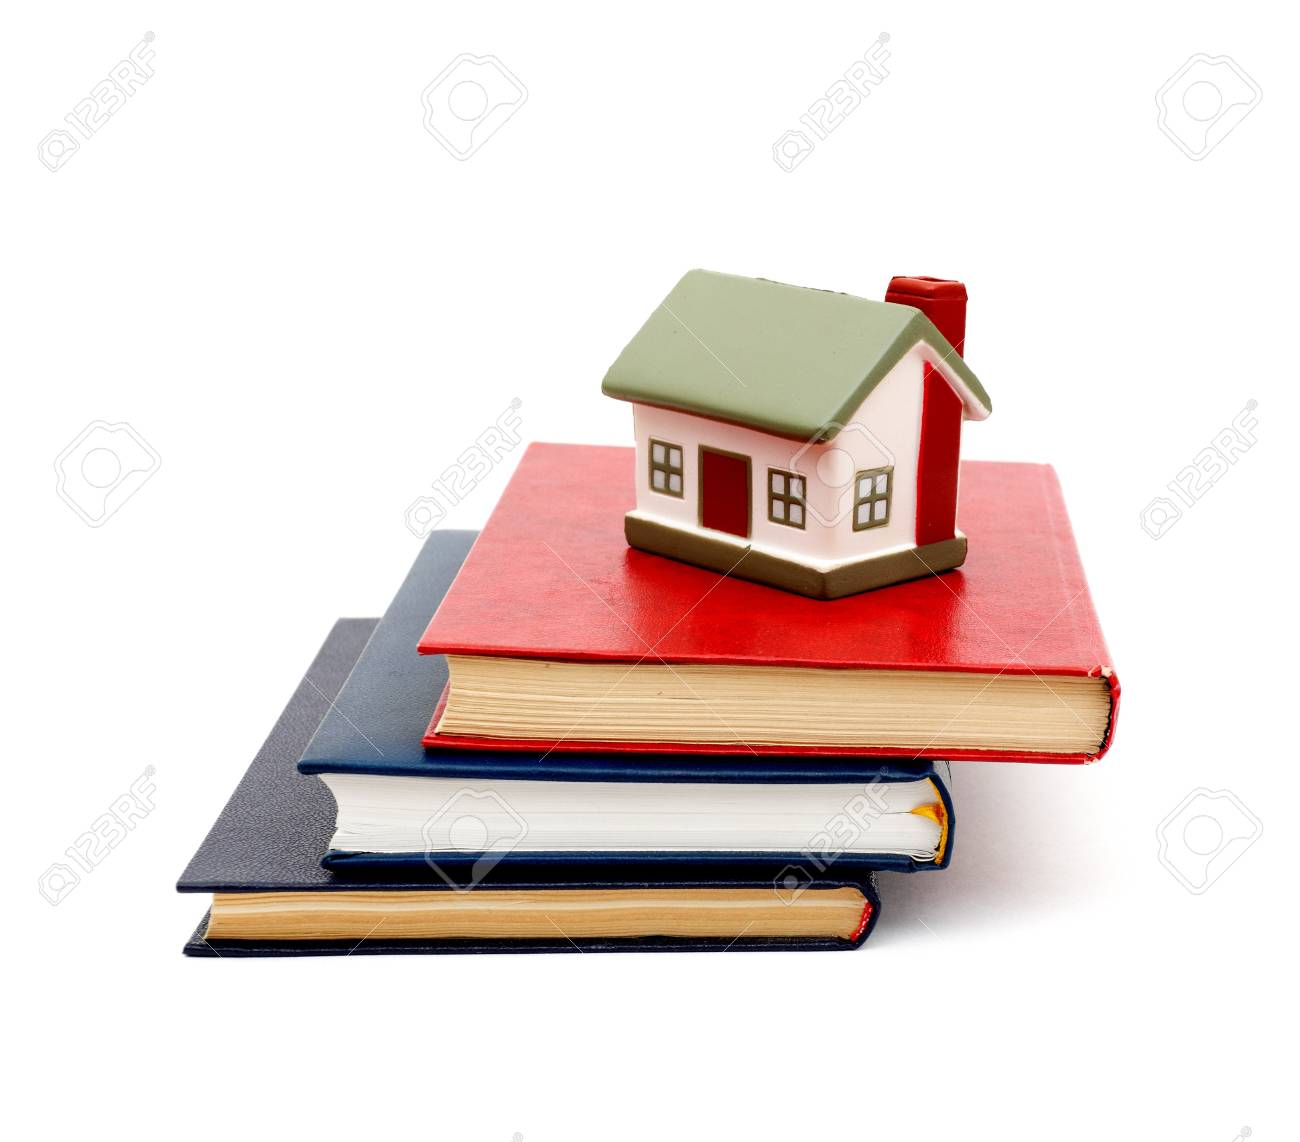 little house and books Stock Photo - 8818757